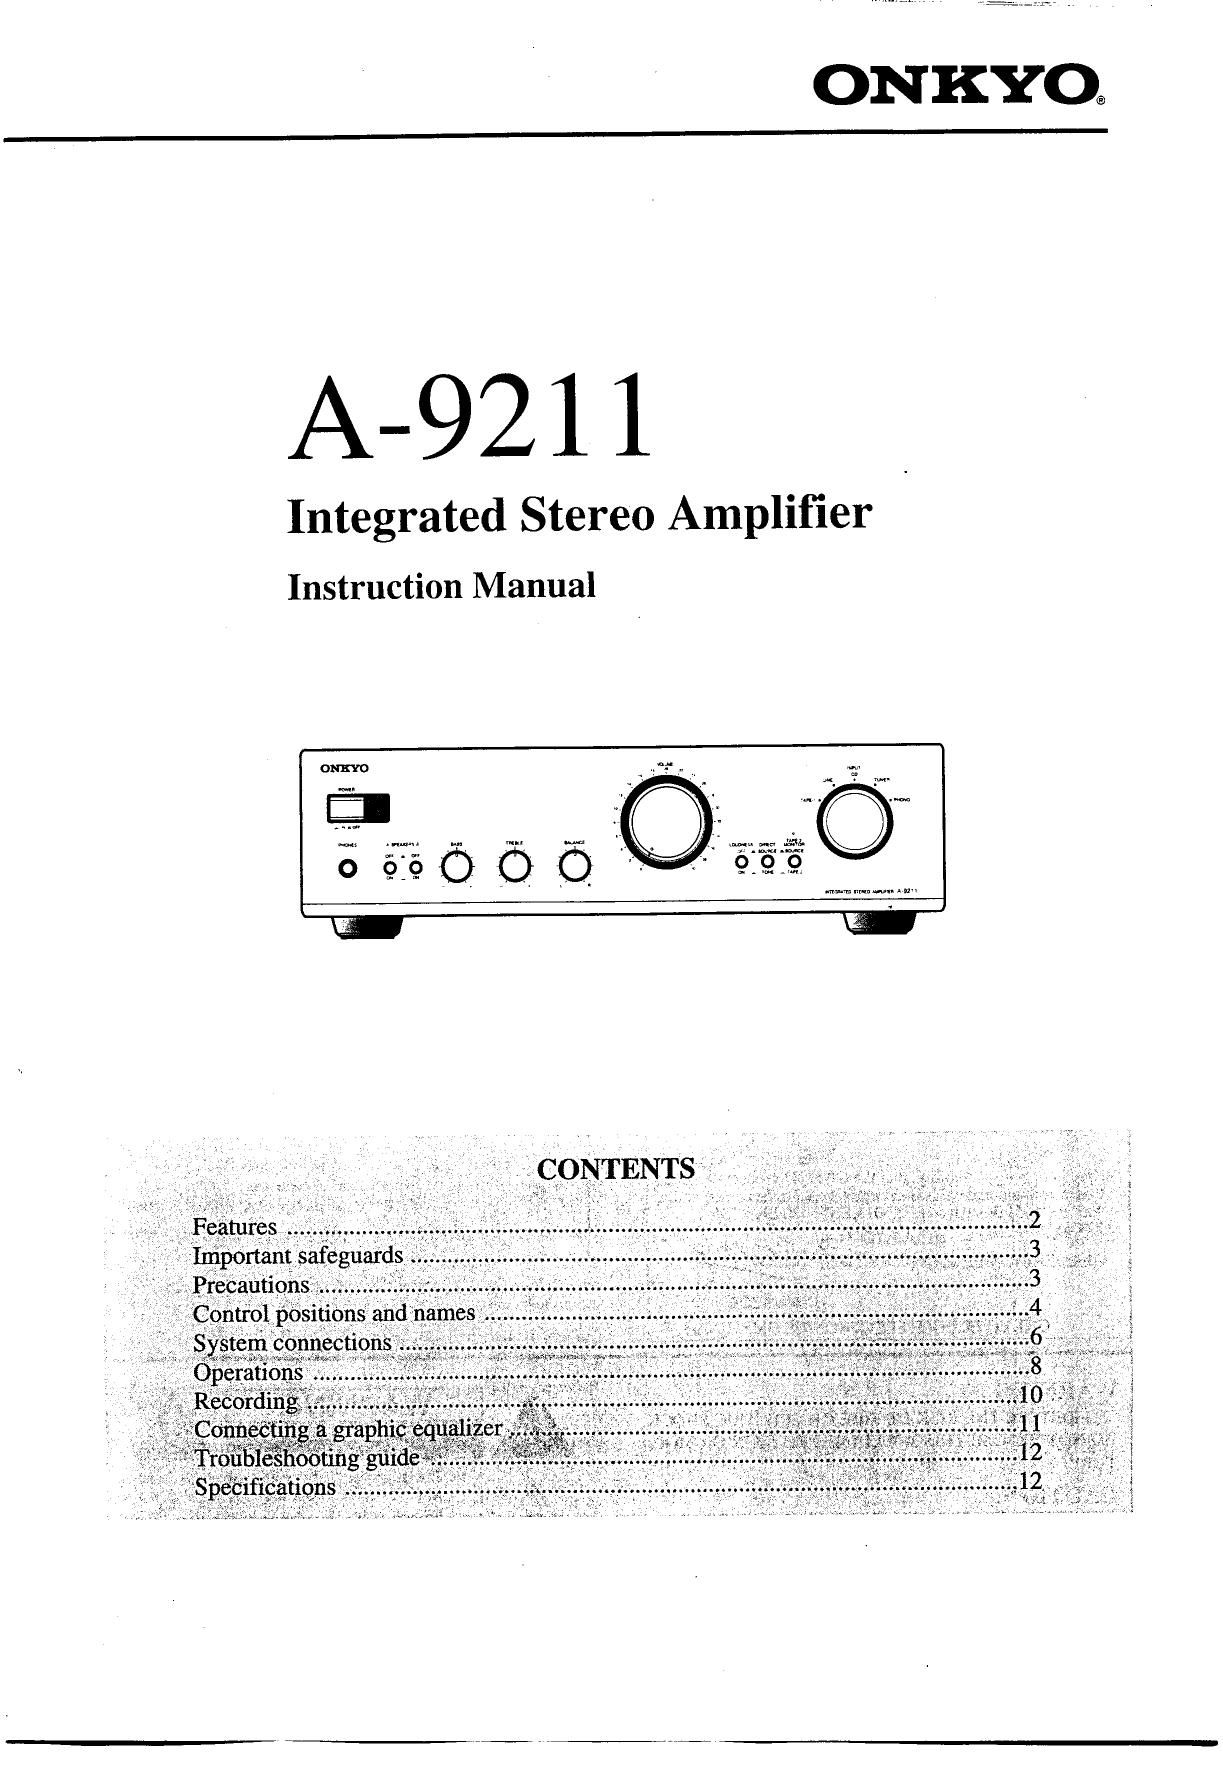 onkyo a 9211 owners manual rh audioservicemanuals com onkyo owner manuals onkyo owners manual download